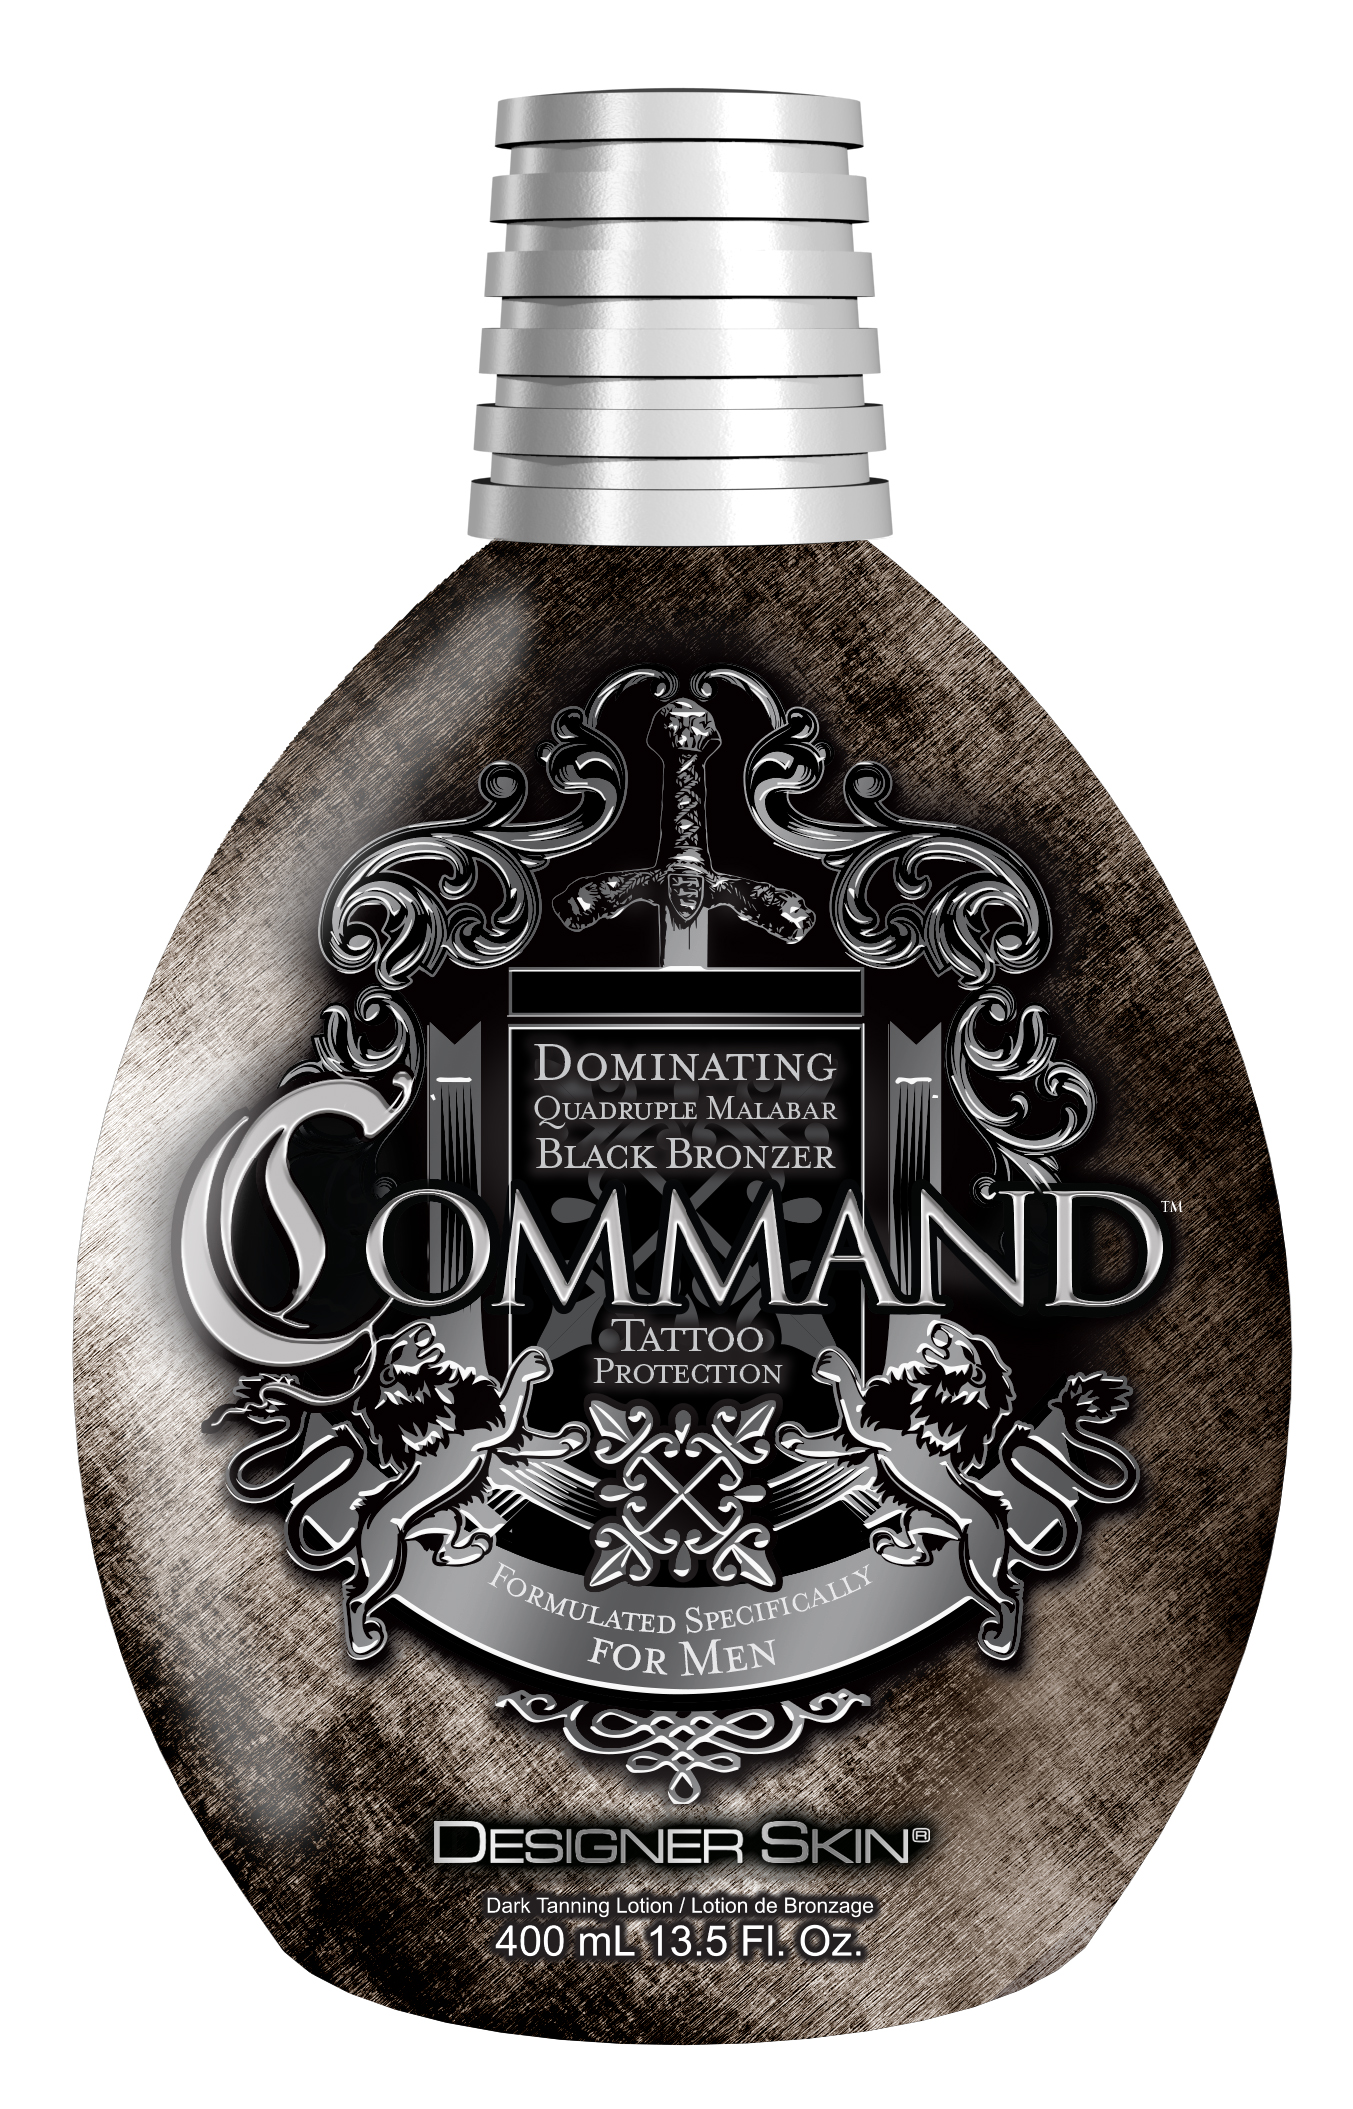 Command™ Dominating Quadruple Malabar Black Bronzer